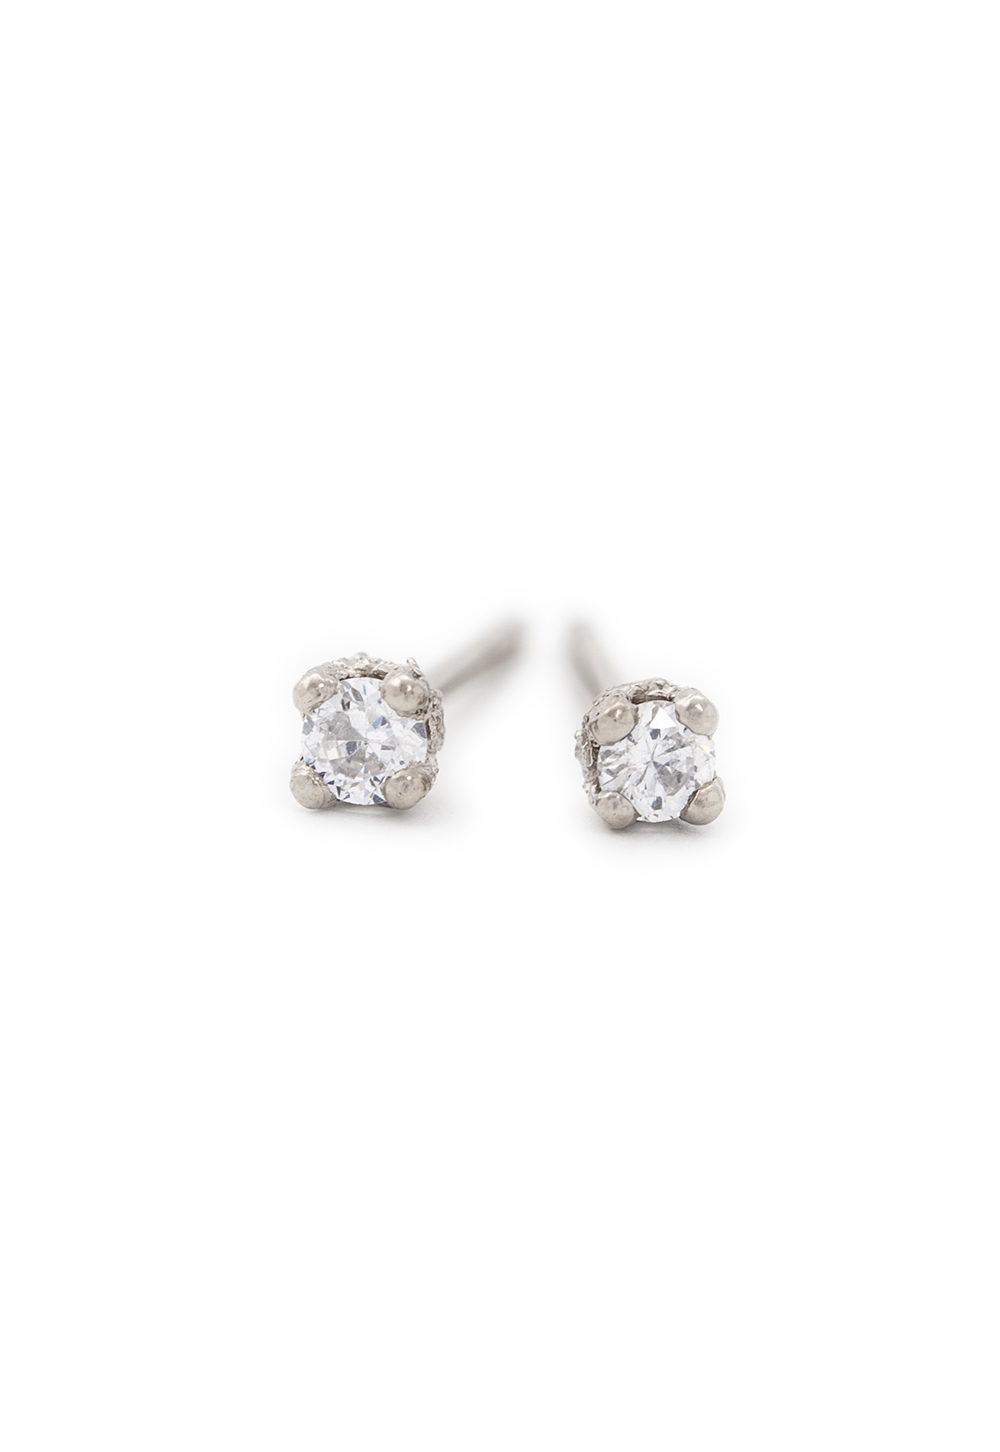 Brilliant cut white diamond studs in white gold, £520